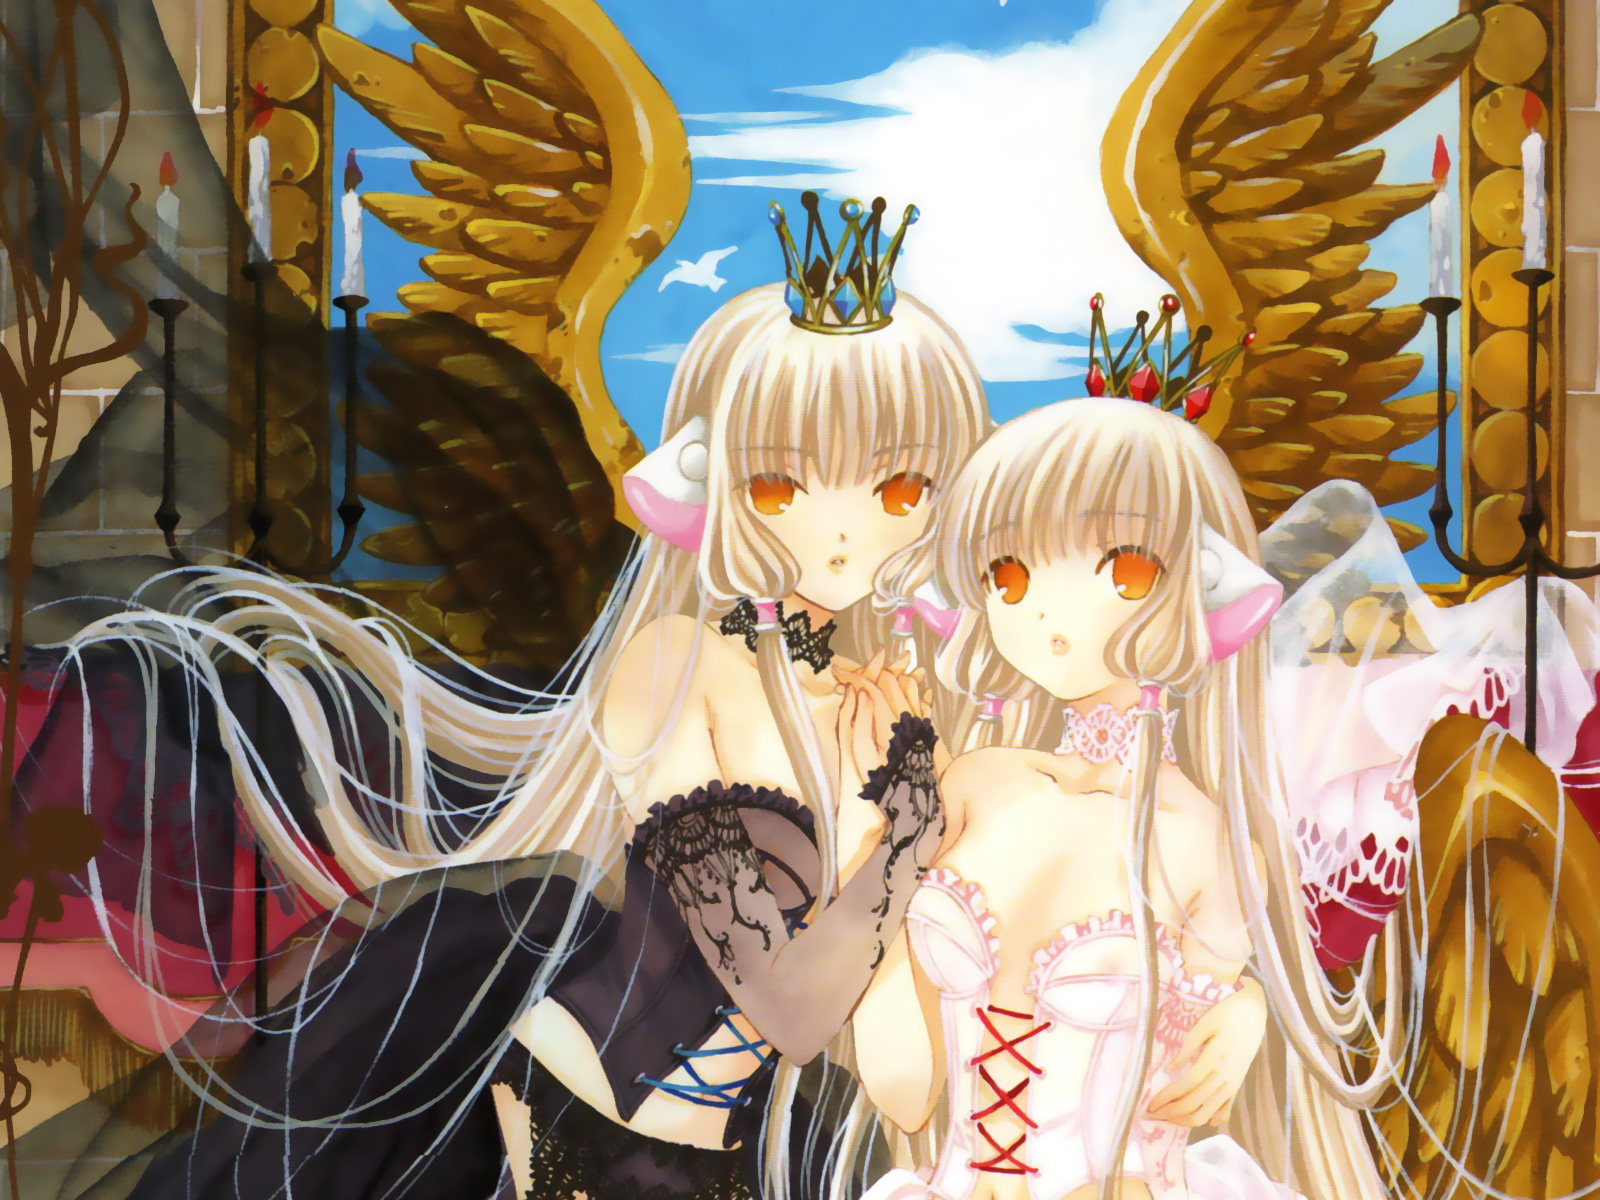 Chobits wallpaper and background image 1600x1200 id 109340 - Wallpaper manga anime ...